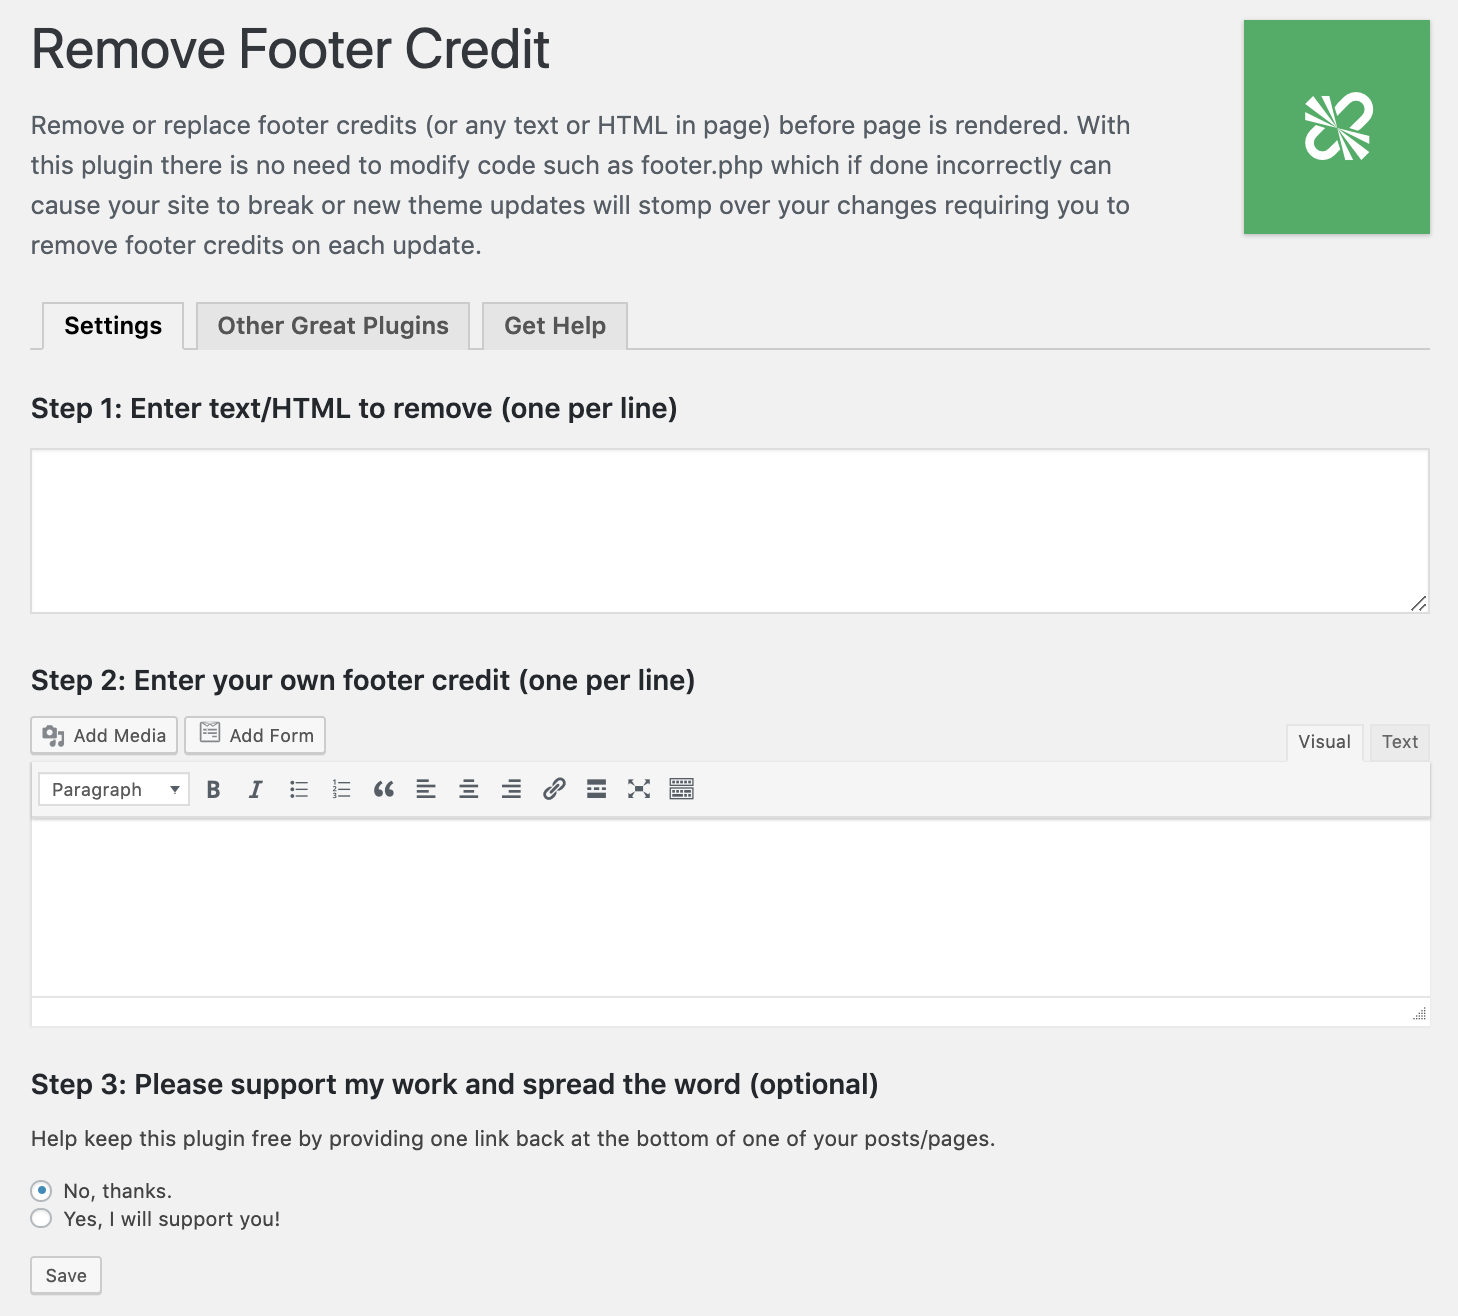 remove footer credit settings on how to edit footer in WordPress